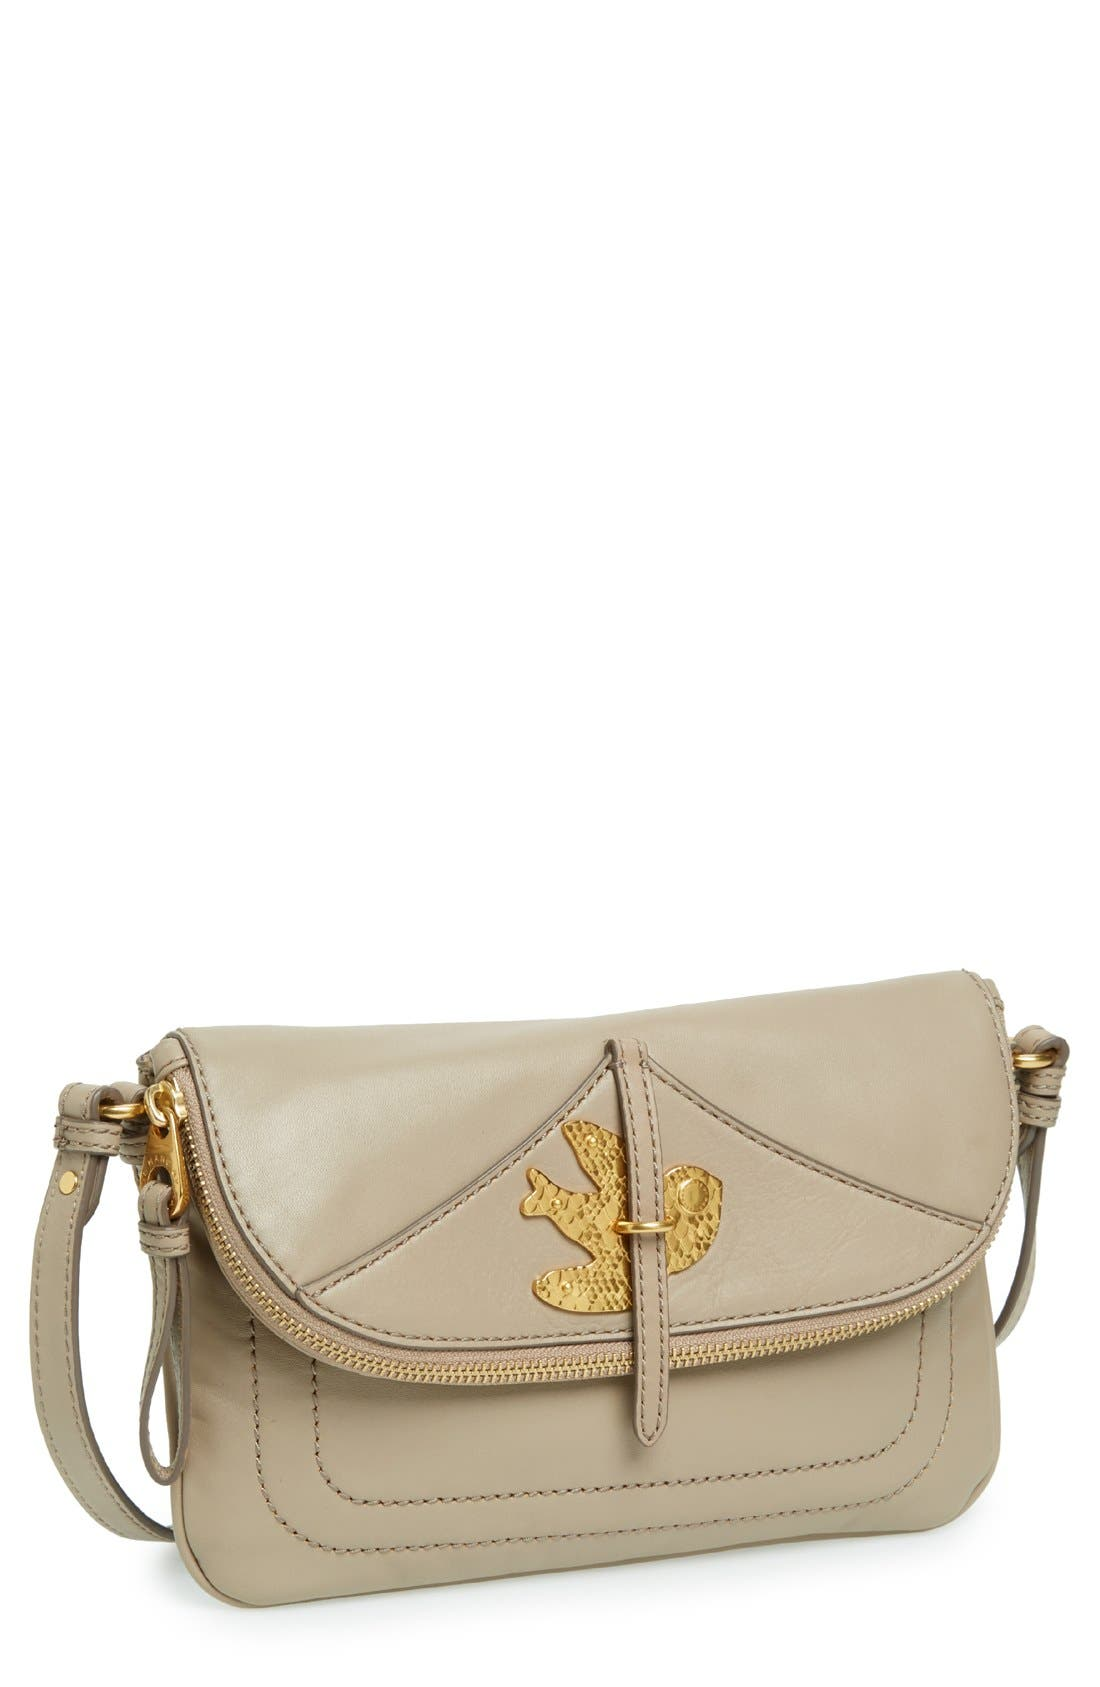 Alternate Image 1 Selected - MARC BY MARC JACOBS 'Petal to the Metal - Percy' Crossbody Bag